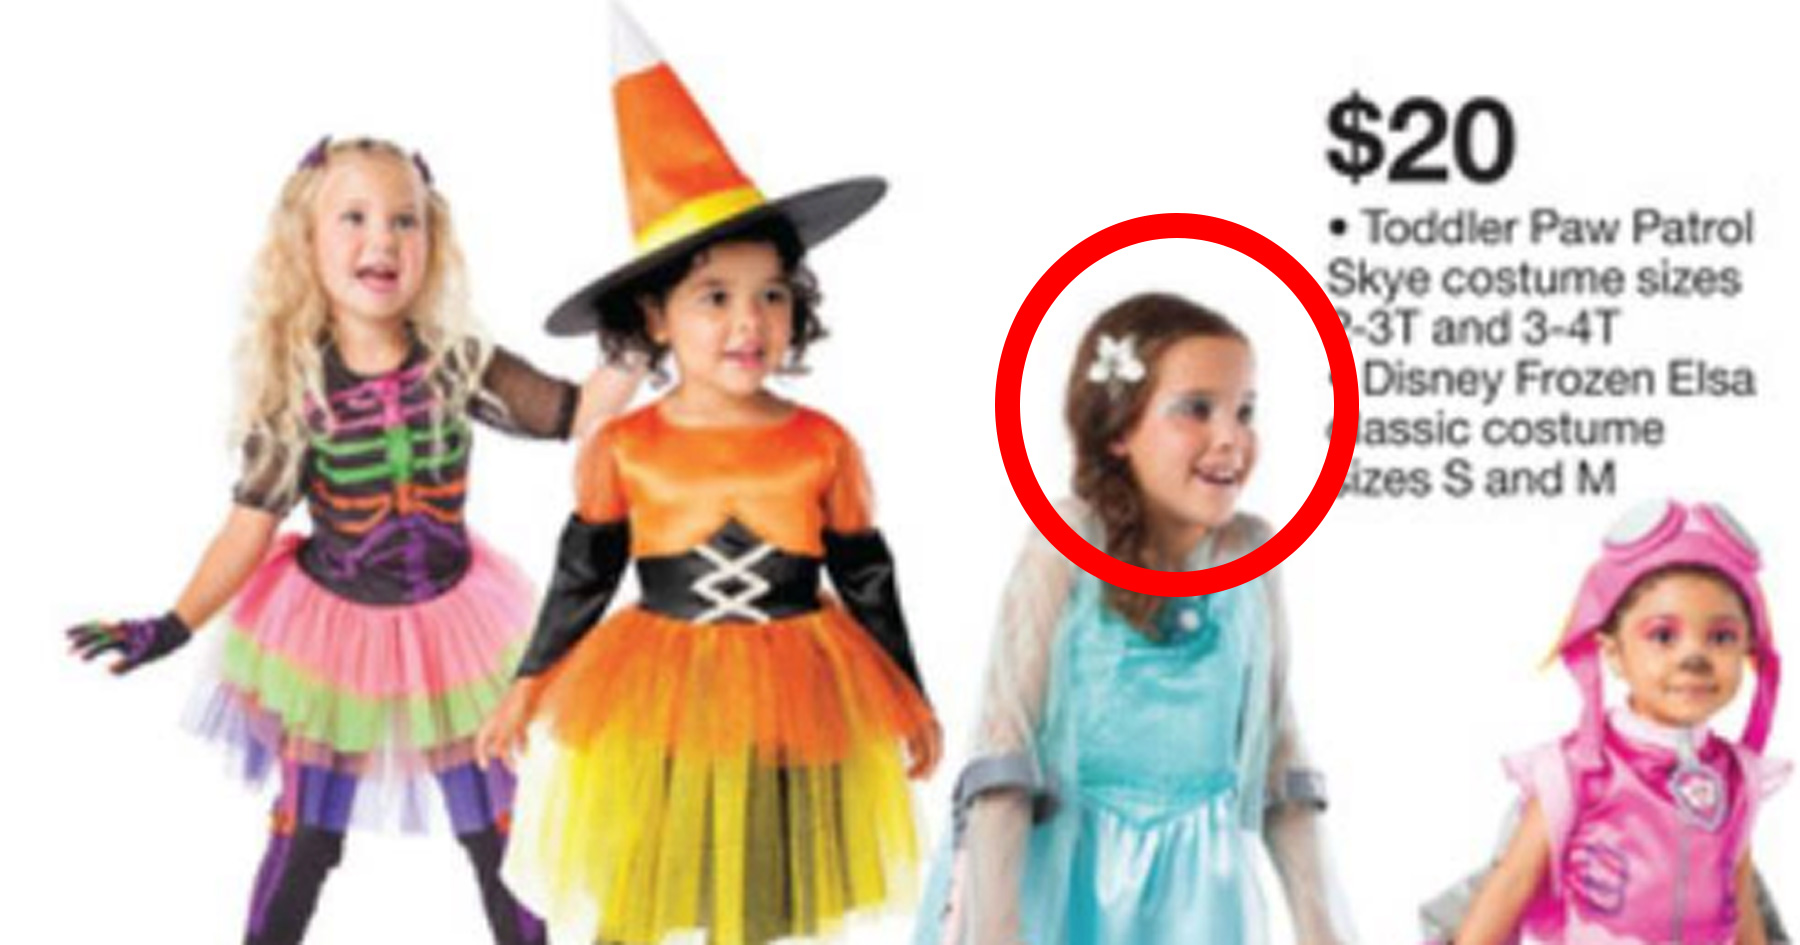 Target's Halloween Disability Ad Is A Win For Advocates - ATTN: